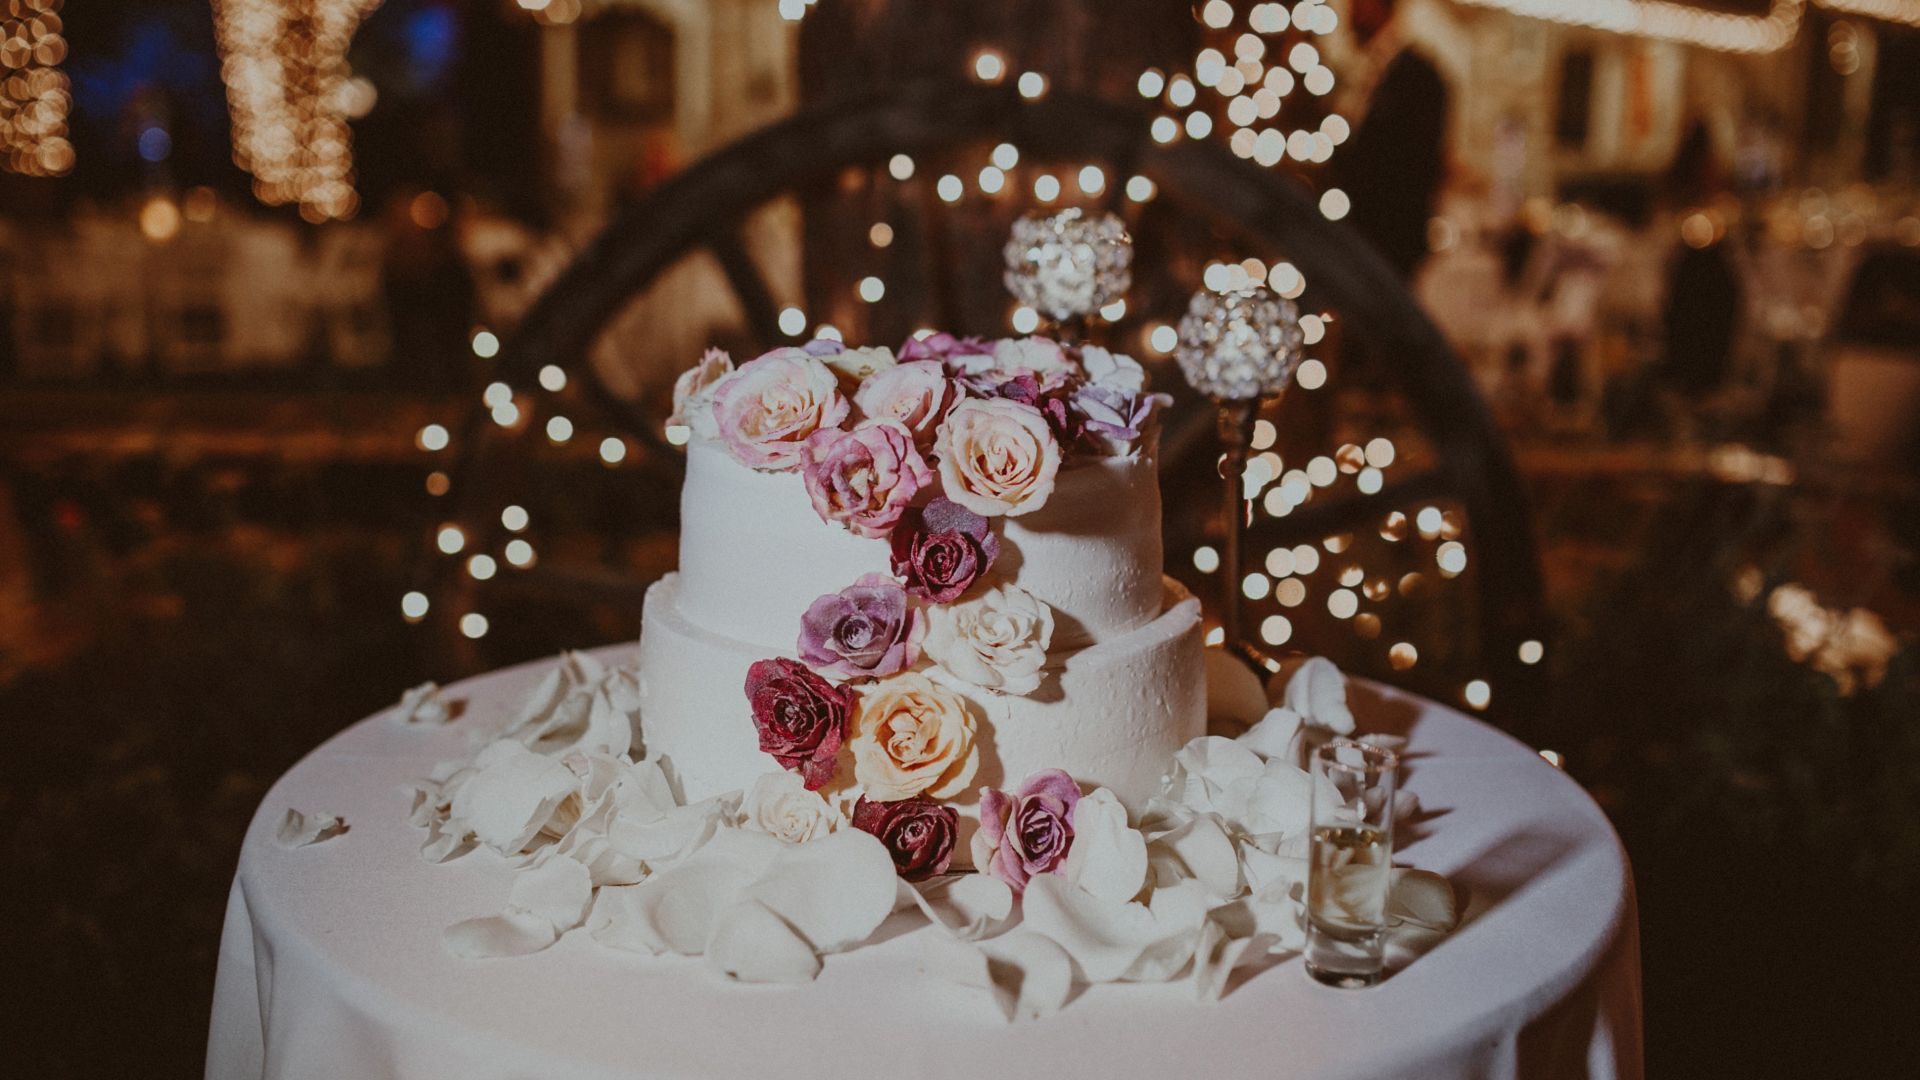 Wallpaper Wedding Cake Flowers 4k Food 14964